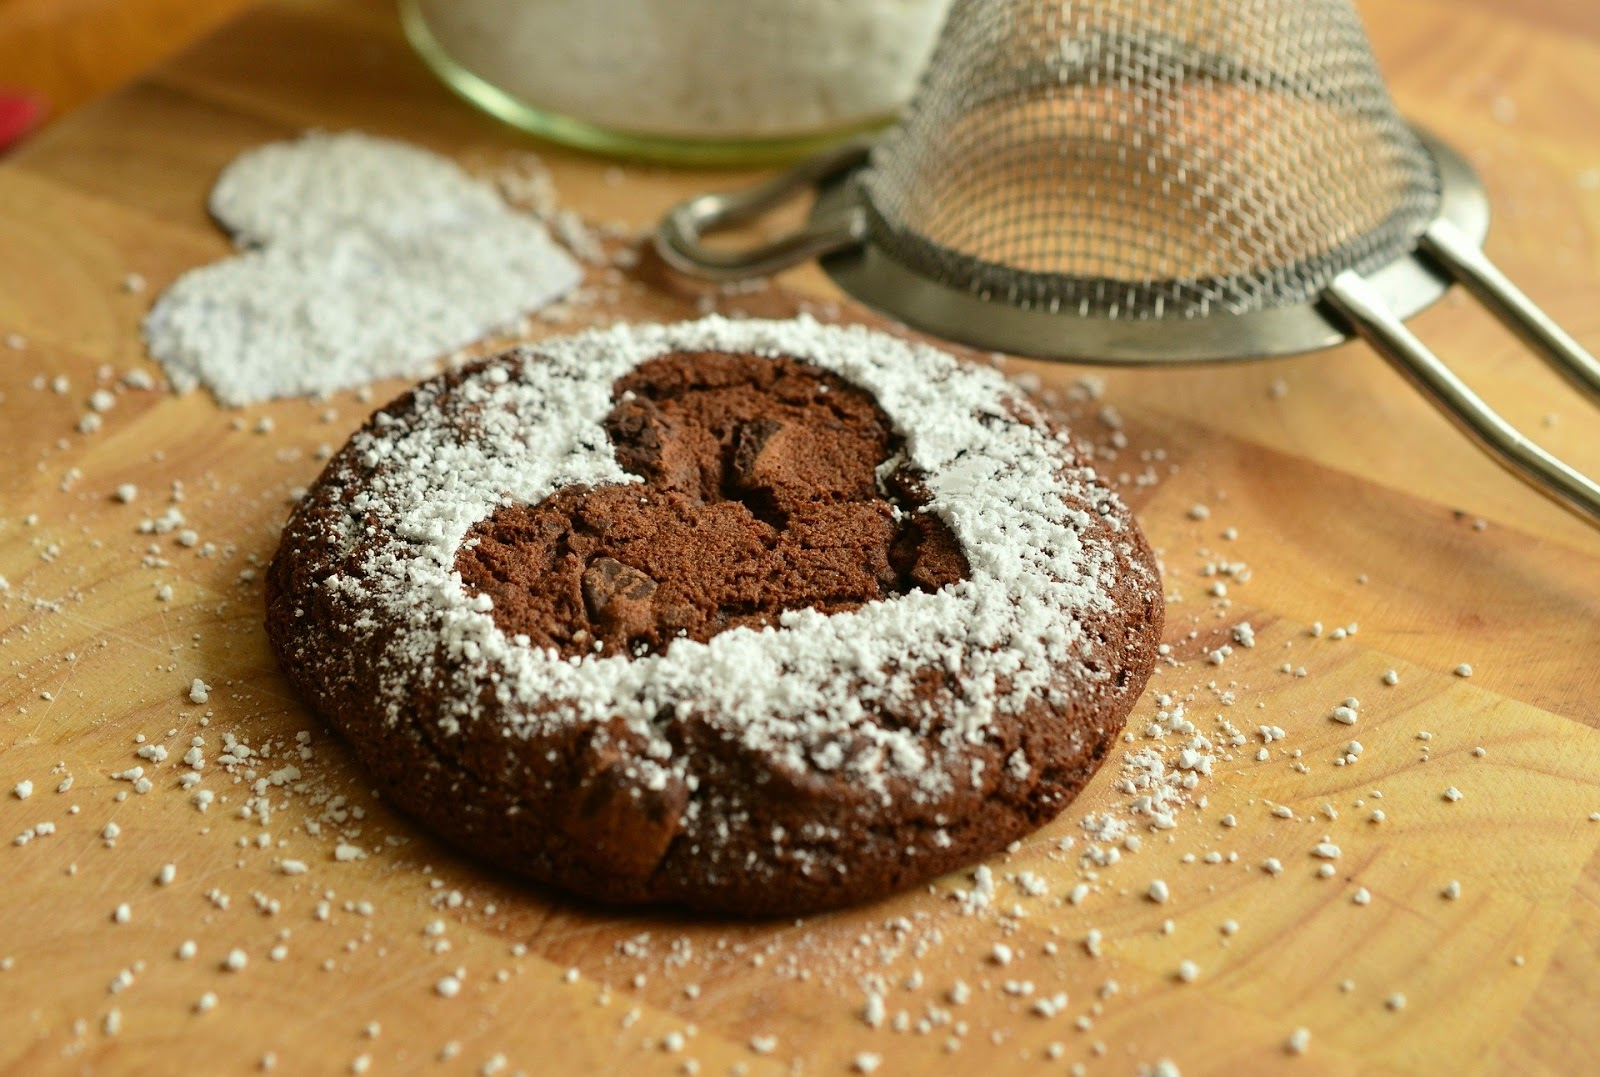 Pastries Bake Sweet Brownie Icing Sugar Baked in heart shaped image